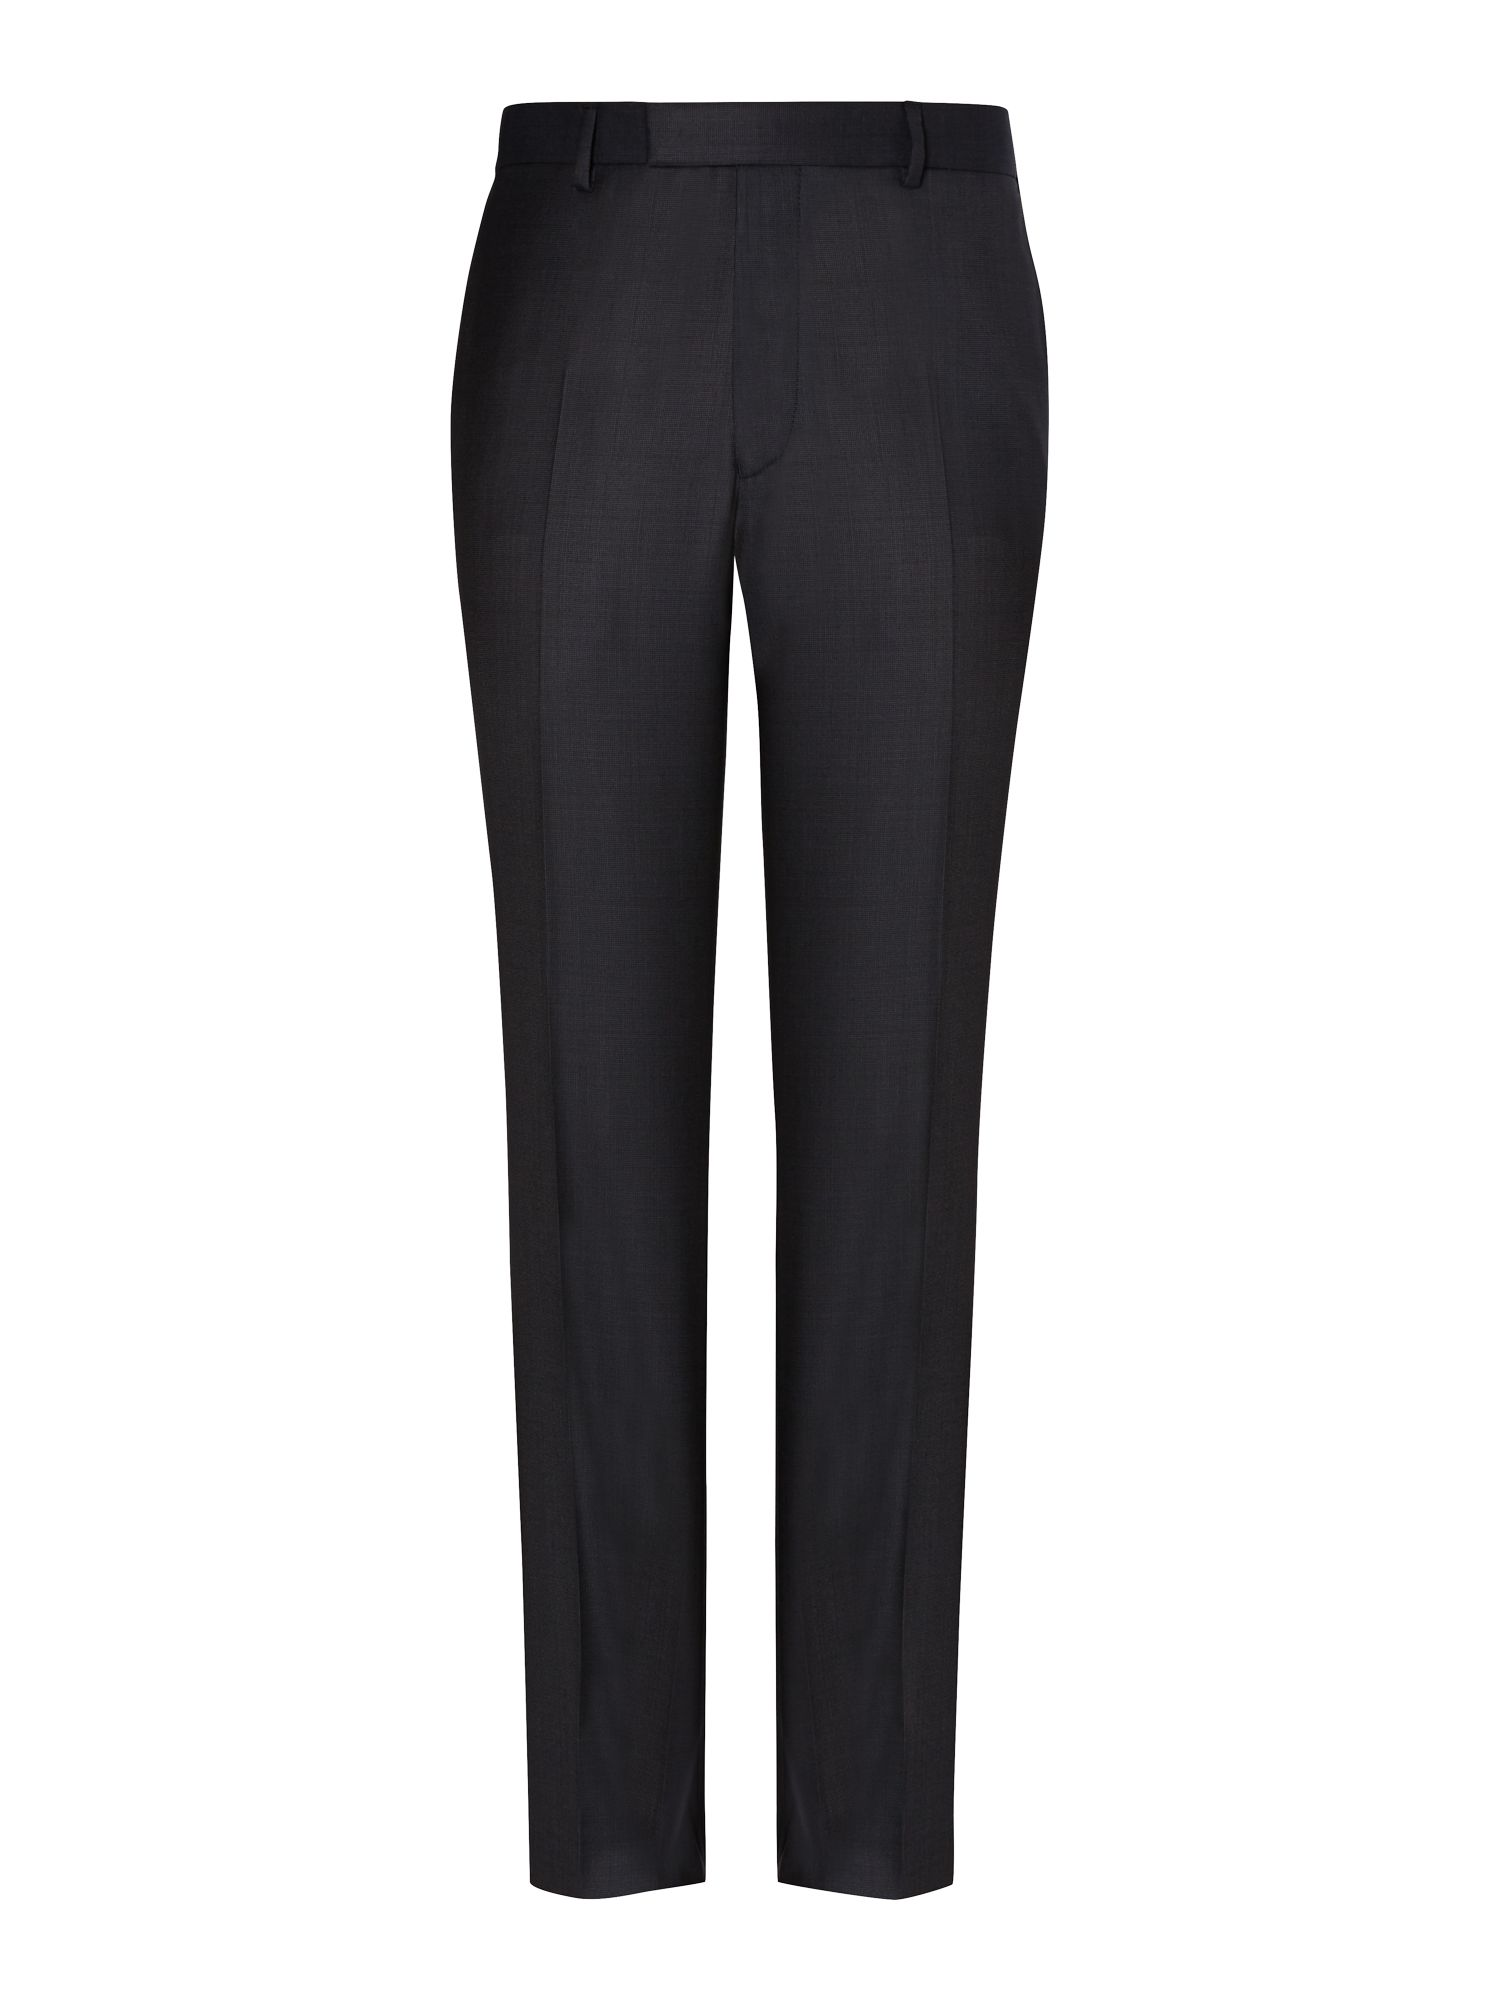 Pinhead formal trouser